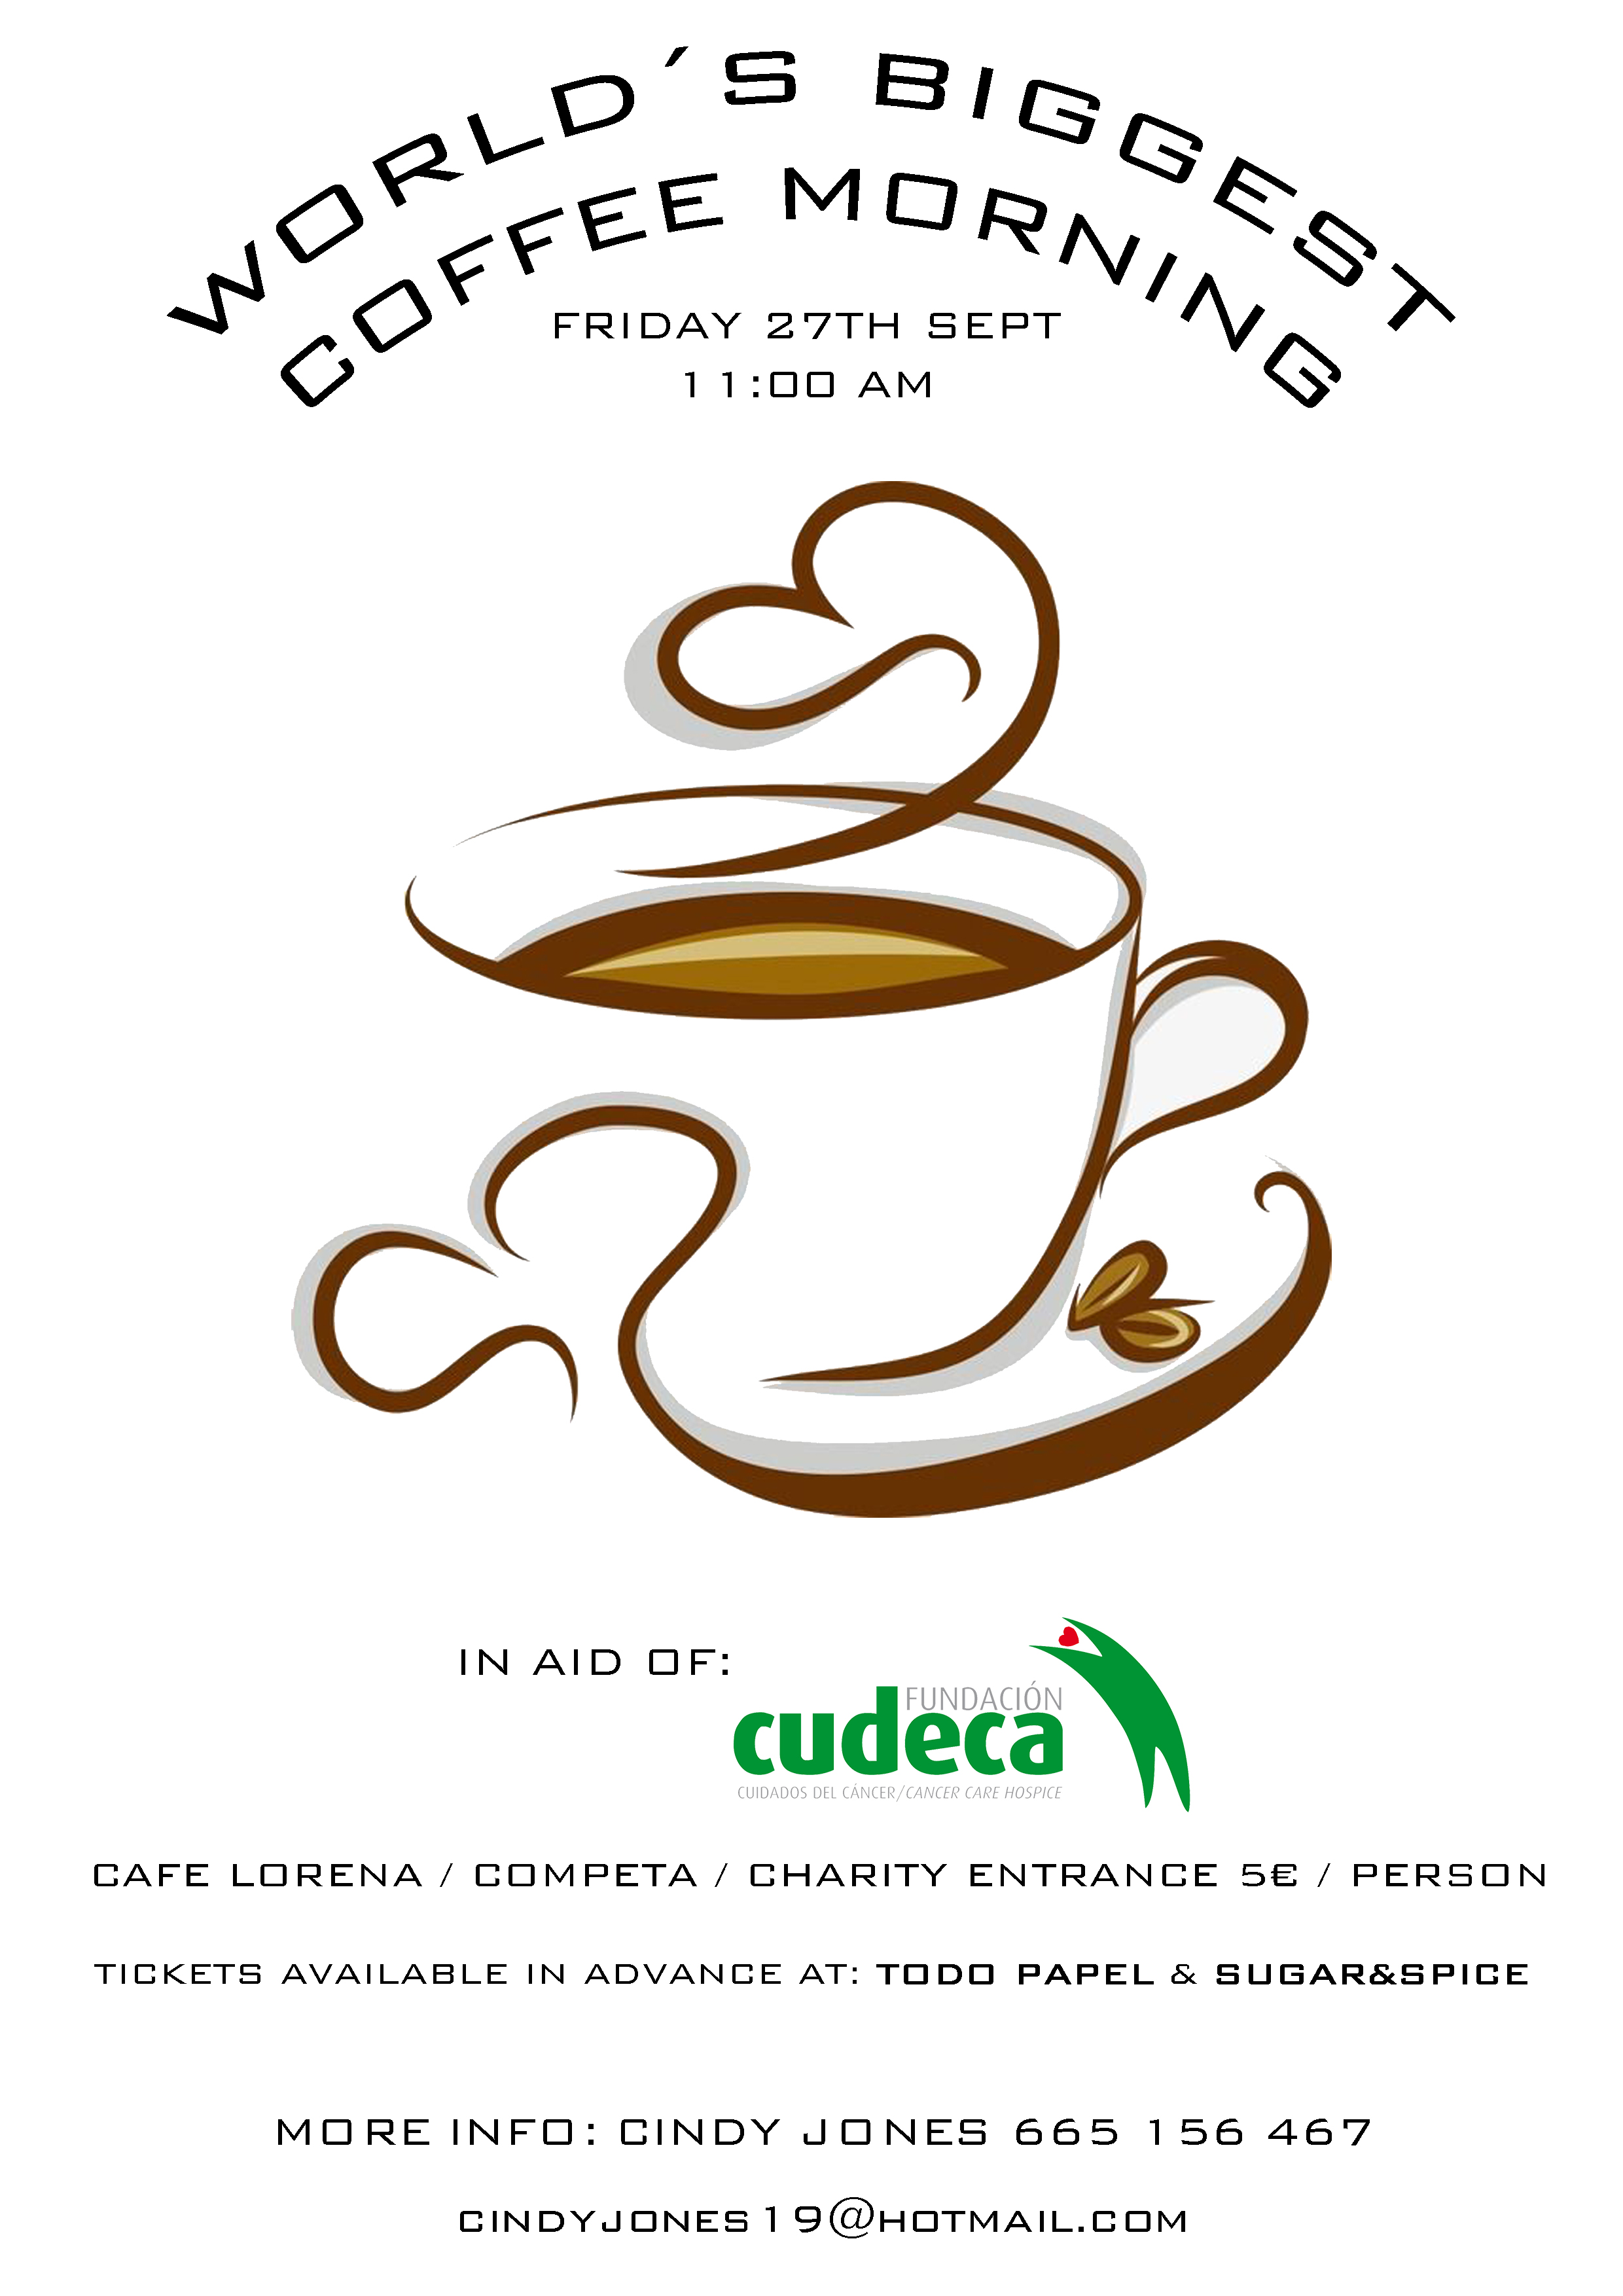 8th edition of the World´s Biggest Coffee Morning at Competa